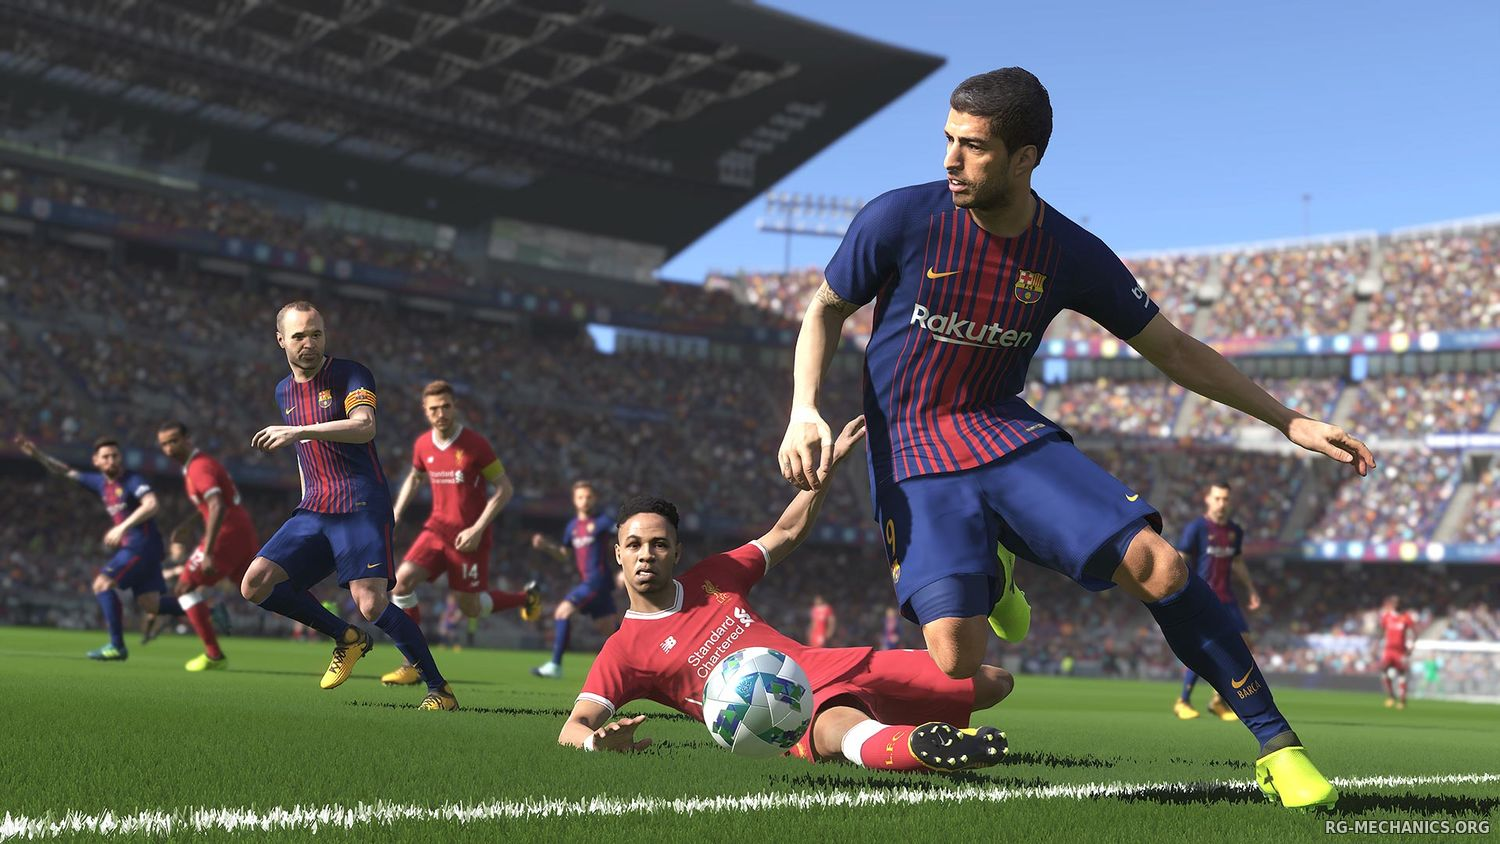 Скриншот 1 к игре PES 2018 / Pro Evolution Soccer 2018: FC Barcelona Edition (2017) PC | RePack от R.G. Механики